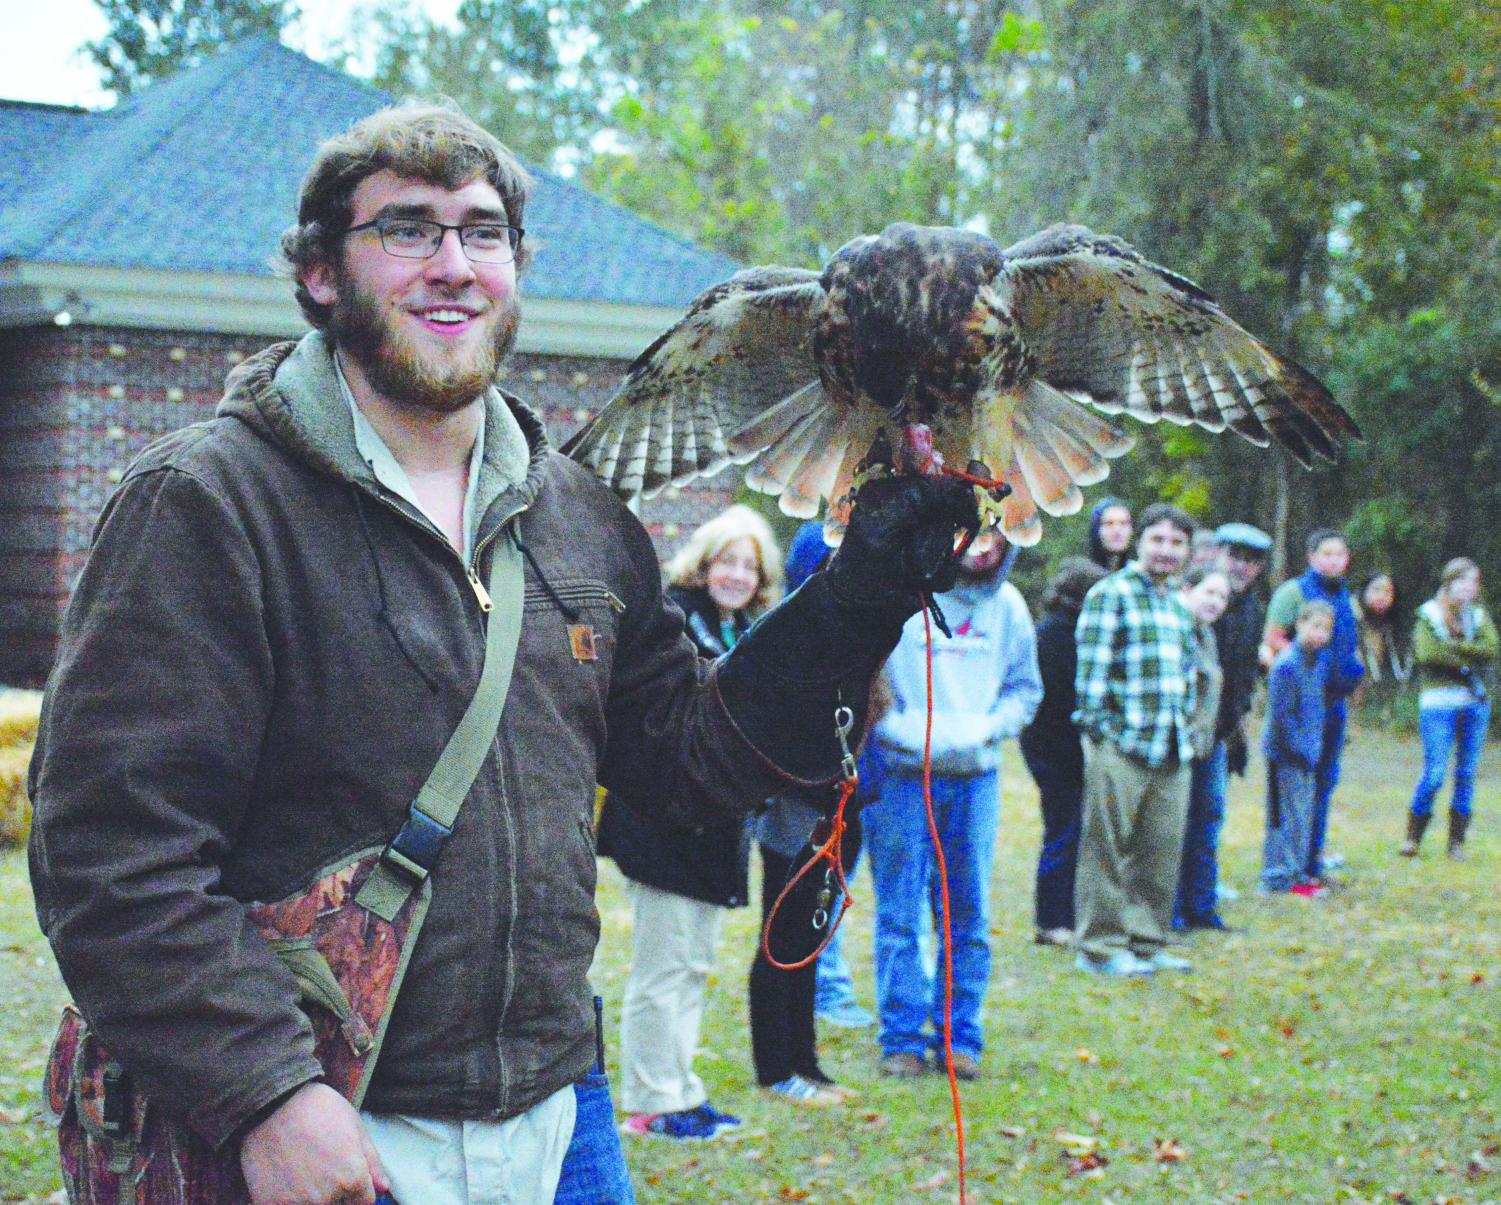 The Pre-Vet Club hosts an exhibit with FMU student Tyler Wright. Wright works in raptor conservation in his free time.